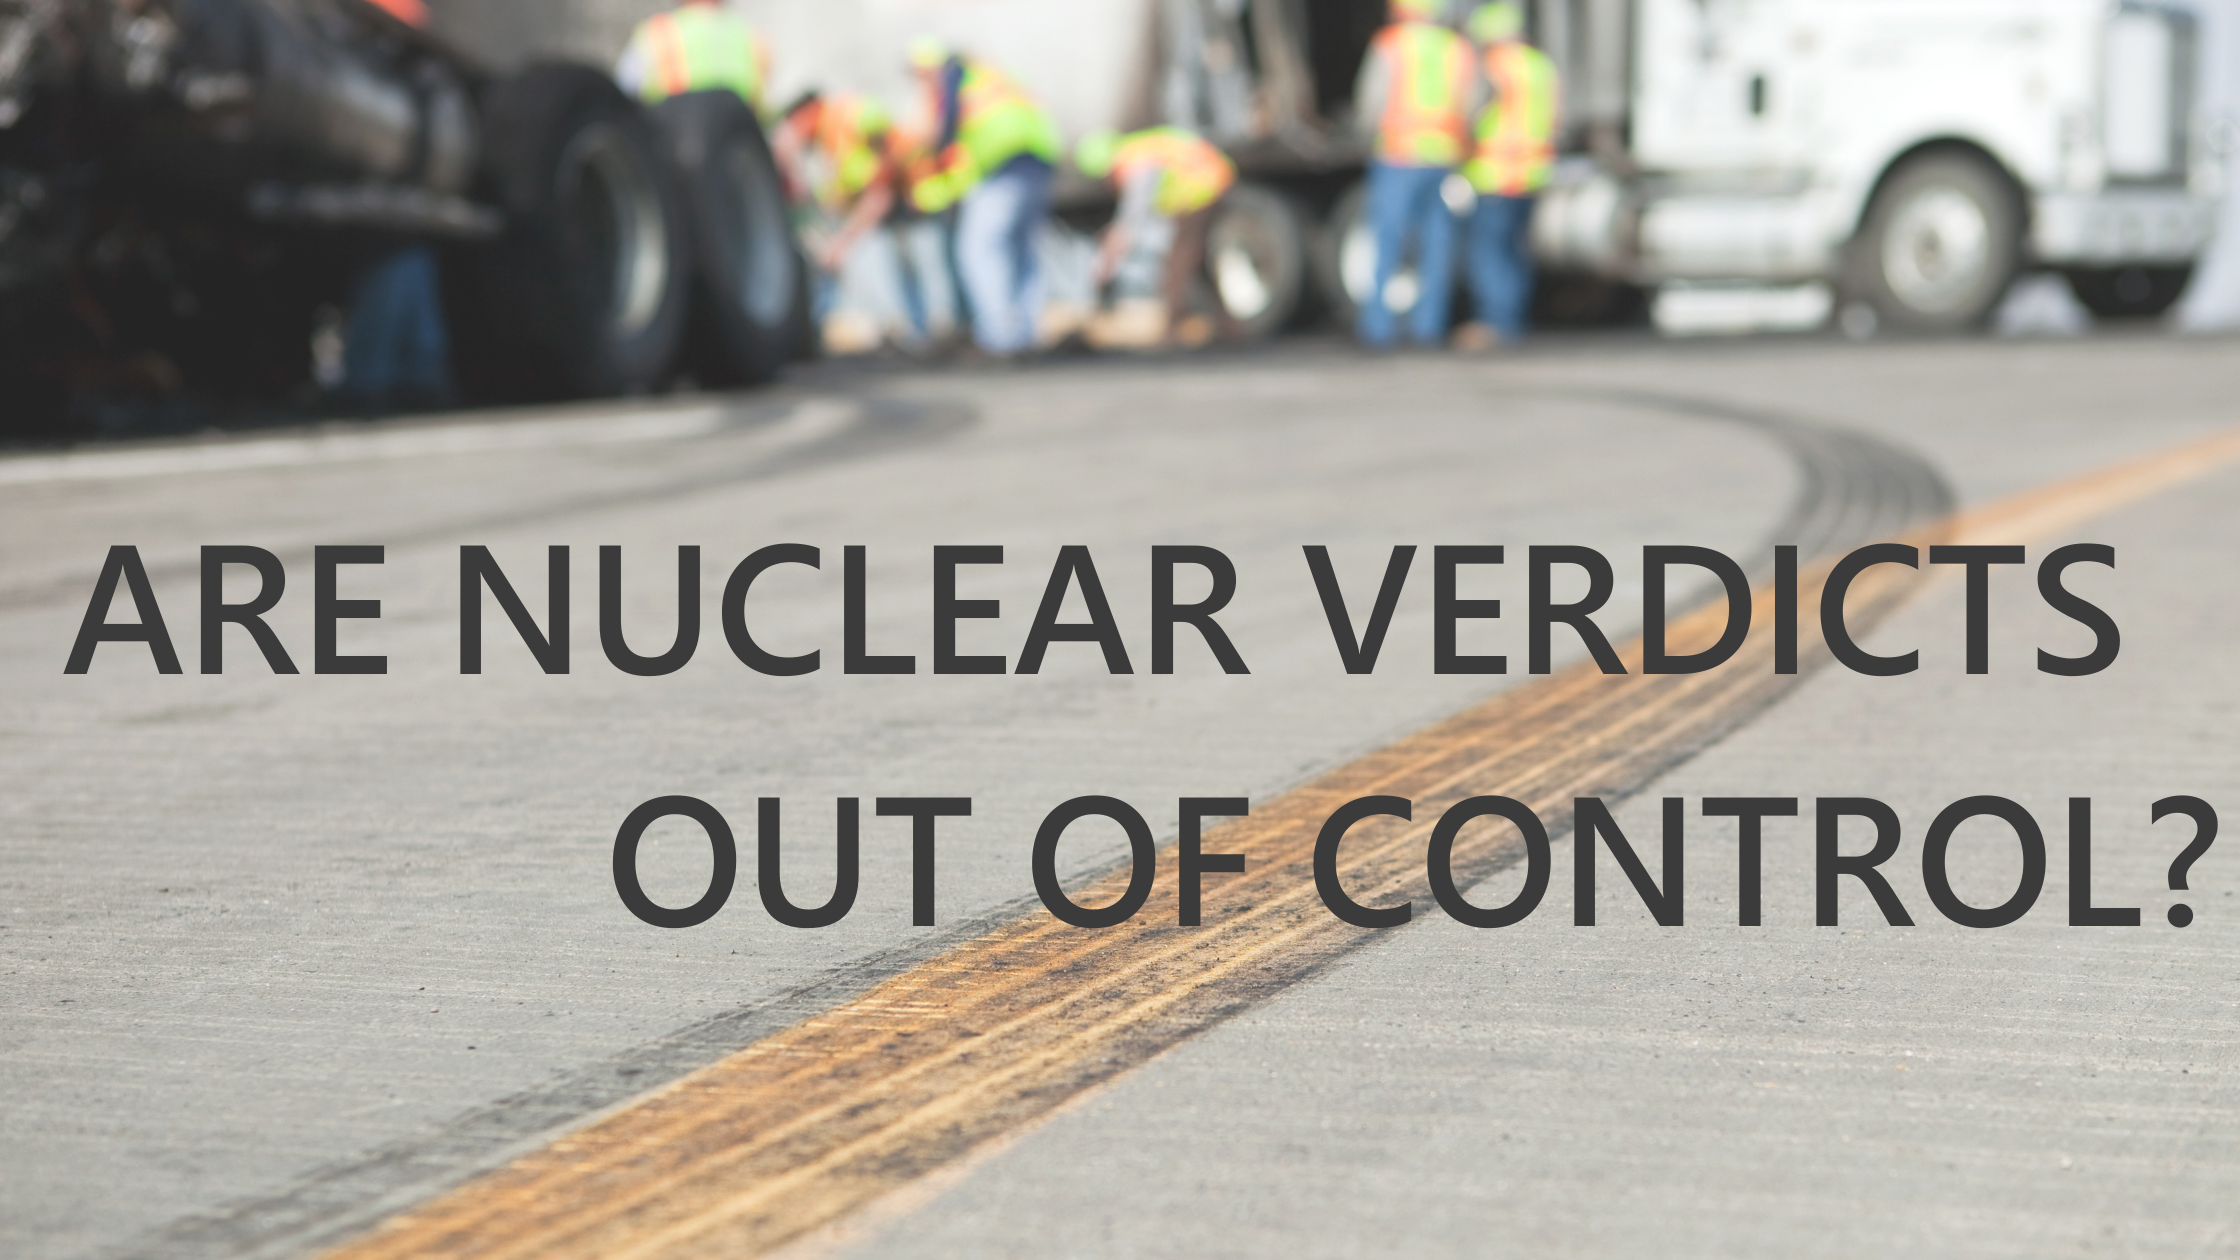 are-nuclear-verdicts-out-of-control-over-image-of-semi-truck-accident-with-skid-marks-on-street